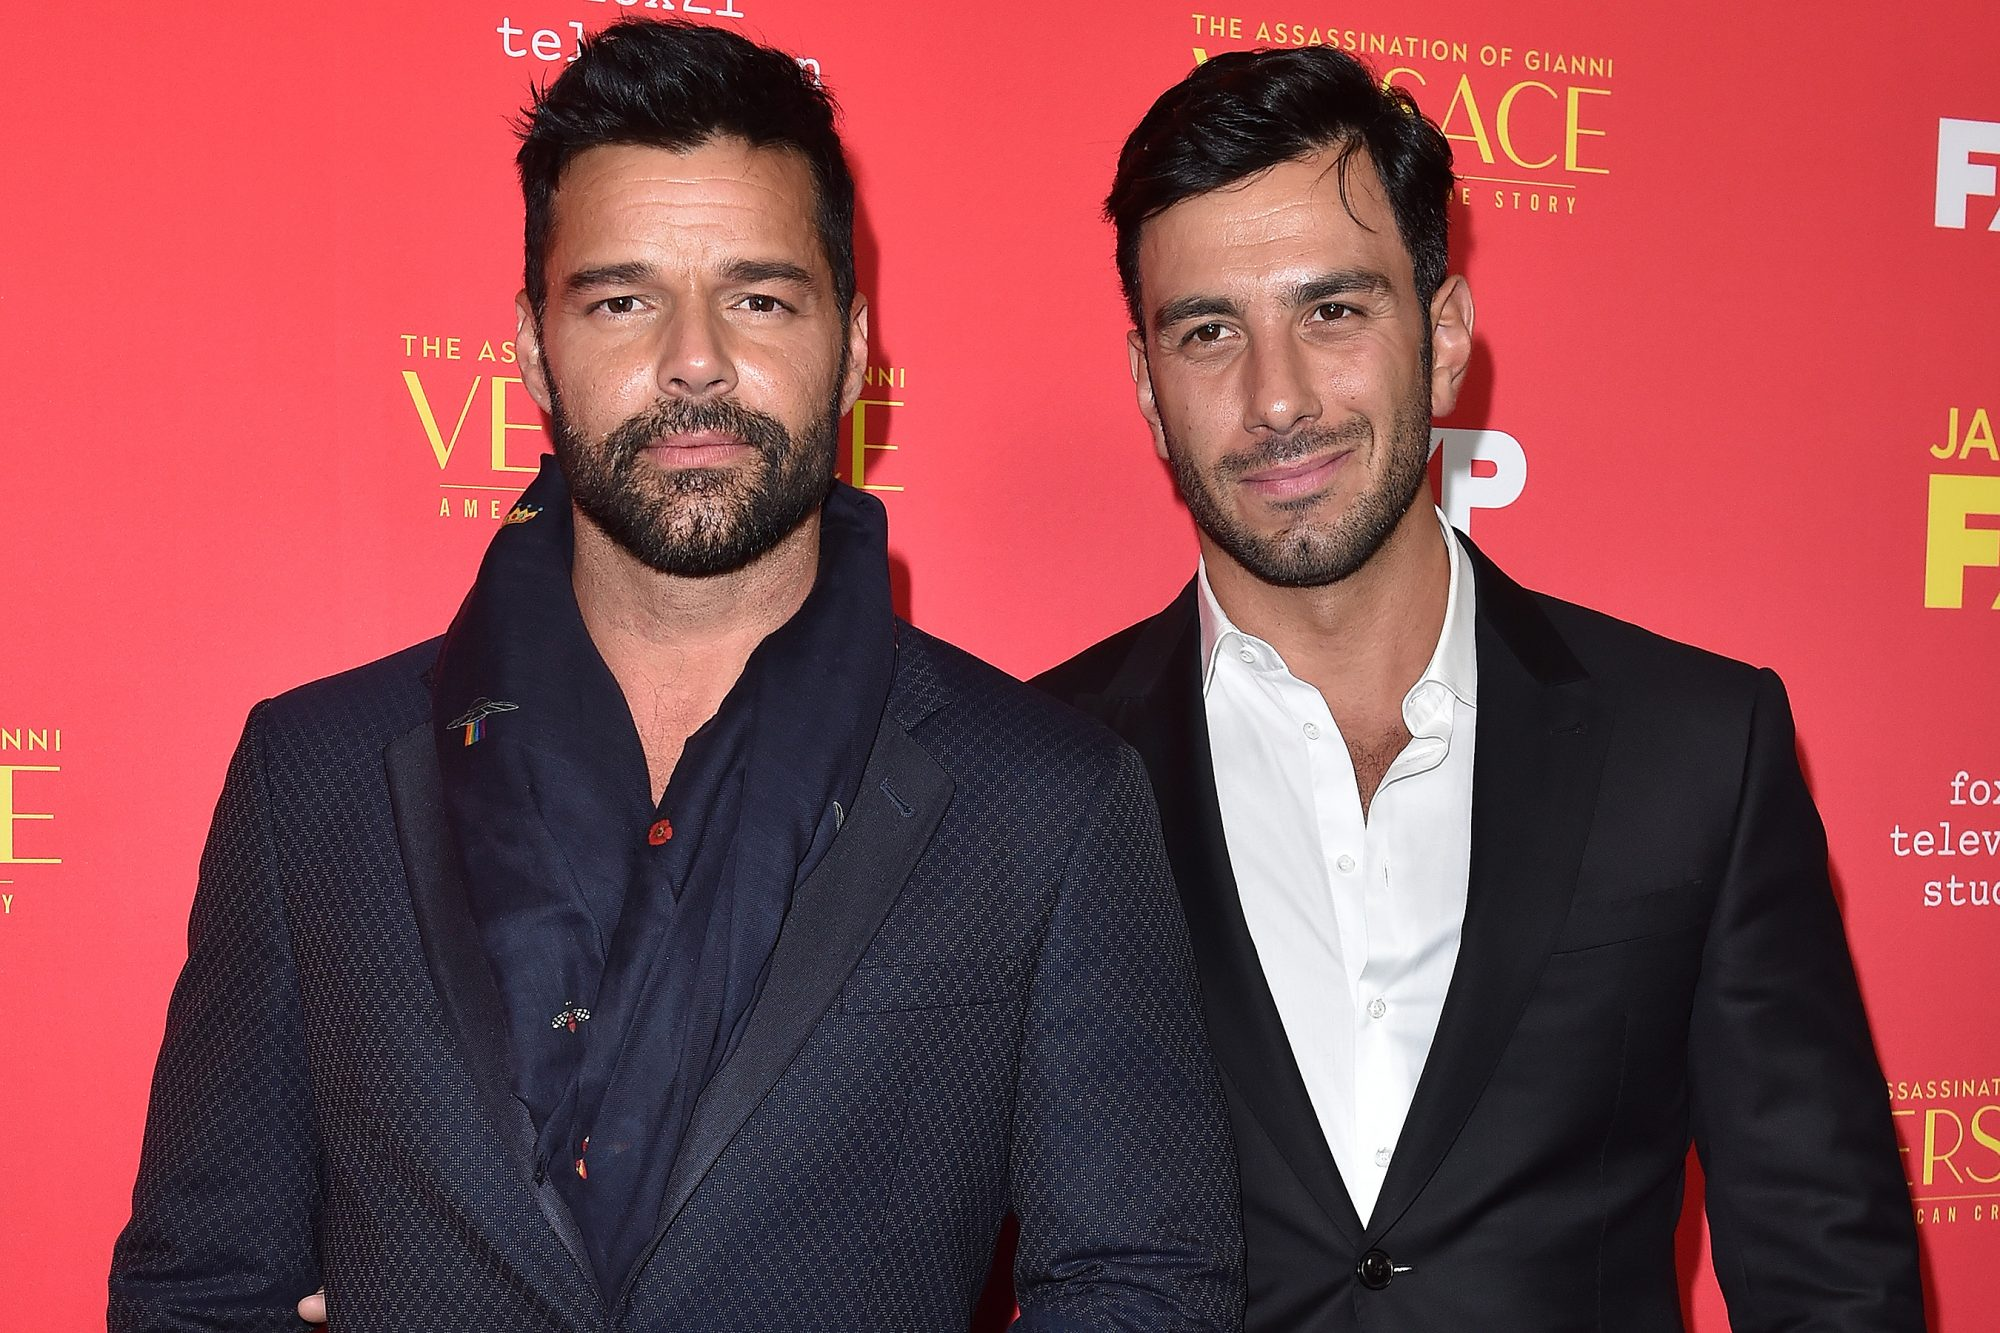 Ricky Martin and husband Jwan Yosef welcome daughter Lucia | EW.com